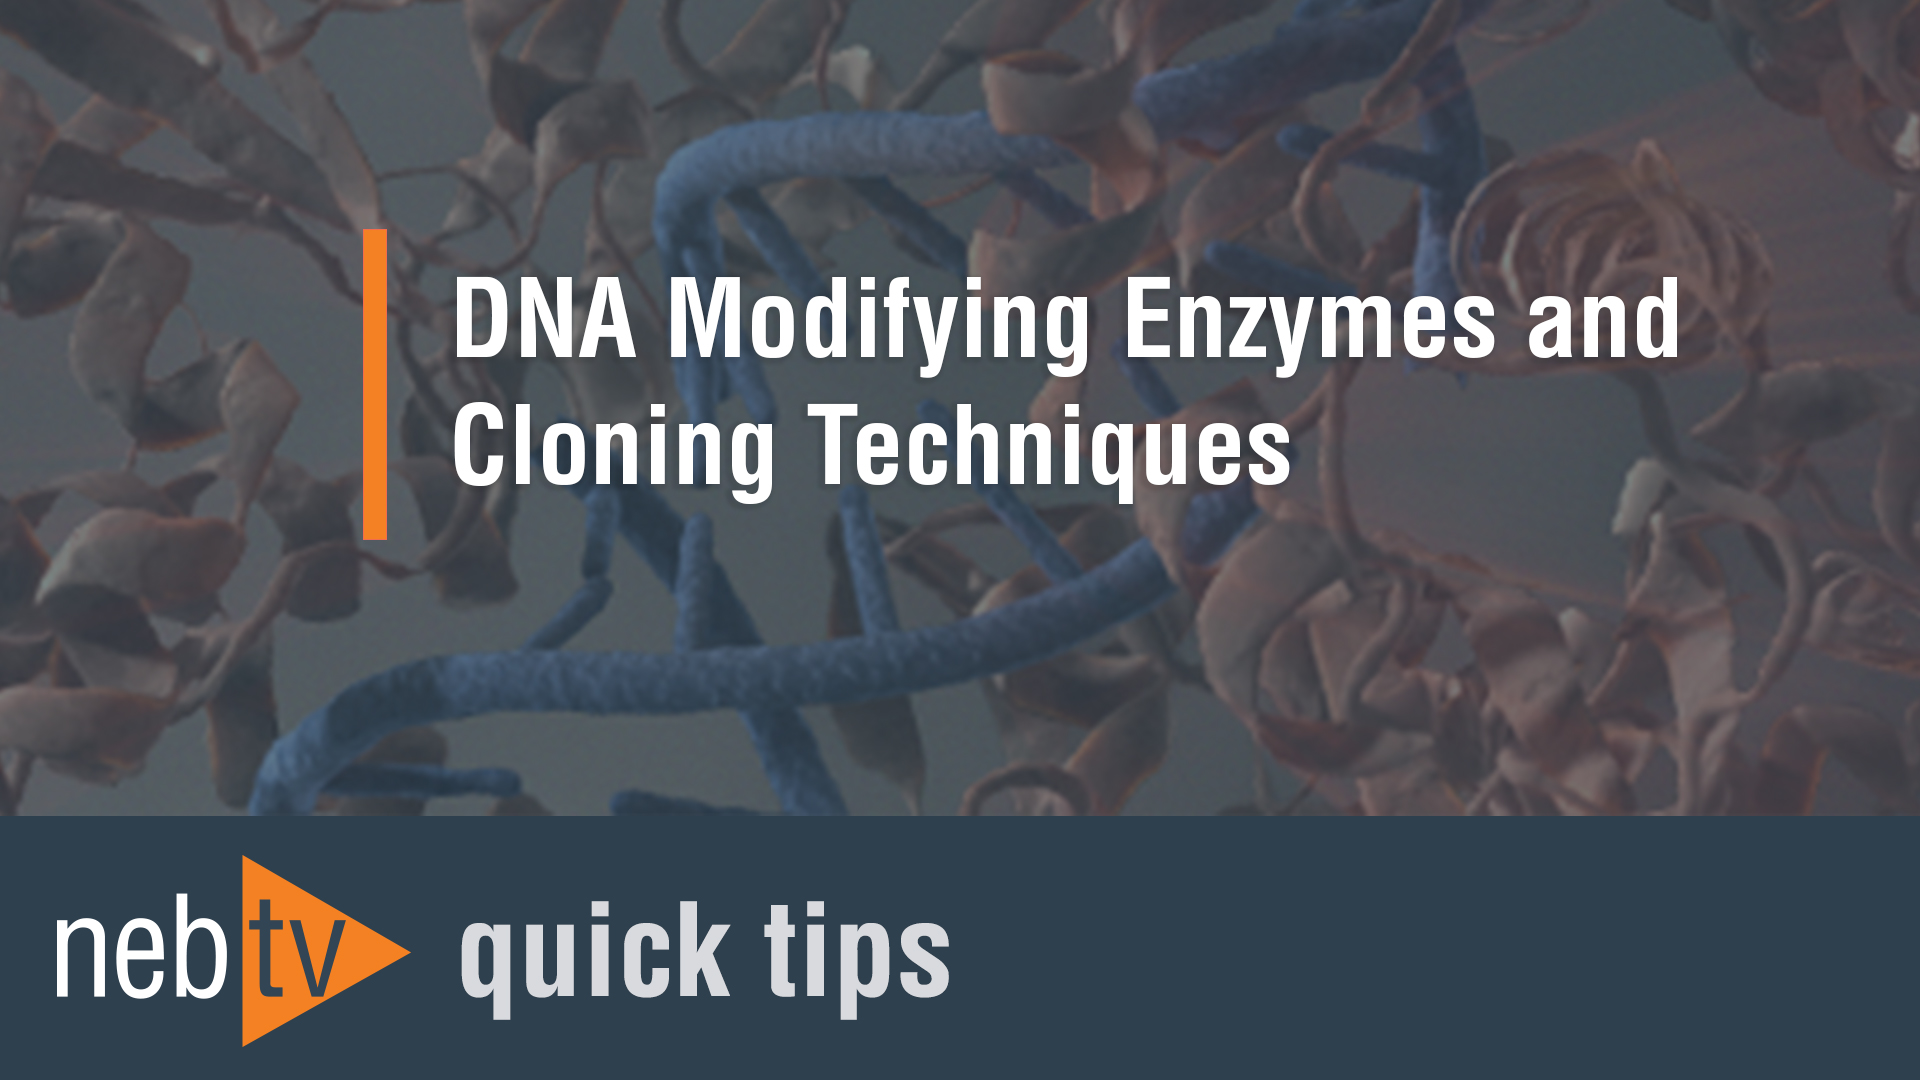 NEBTV_DNA-Modifying-Enzymes-and-Cloning-Techniques_1920